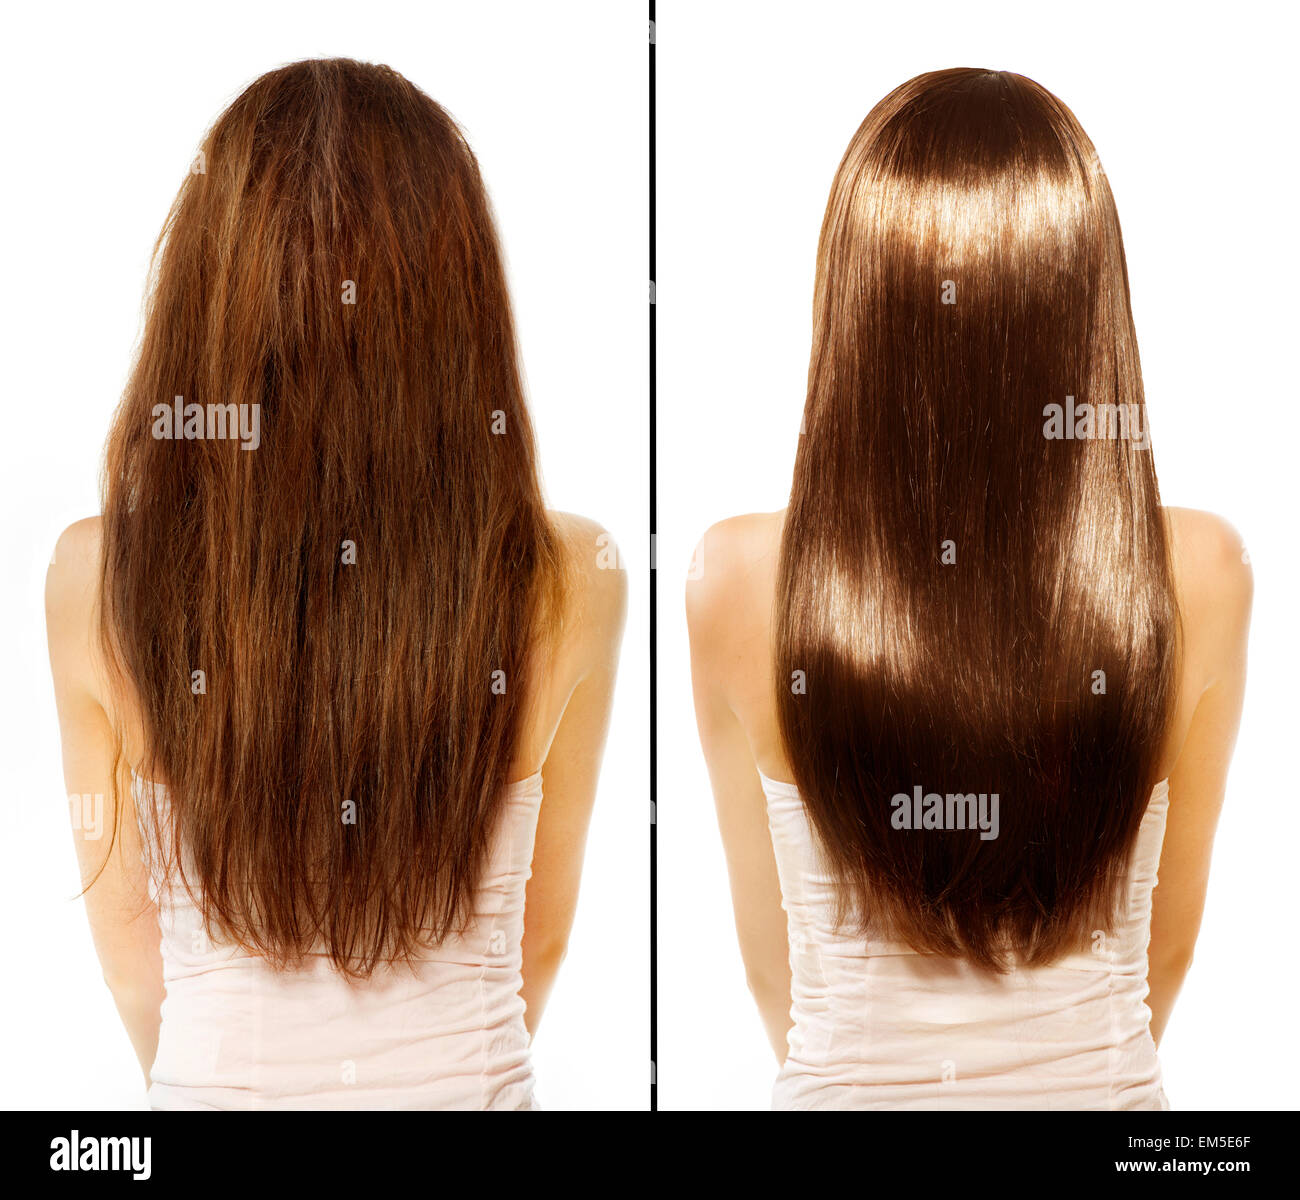 Before and After Damaged Hair Treatment Stock Photo: 81255511 - Alamy